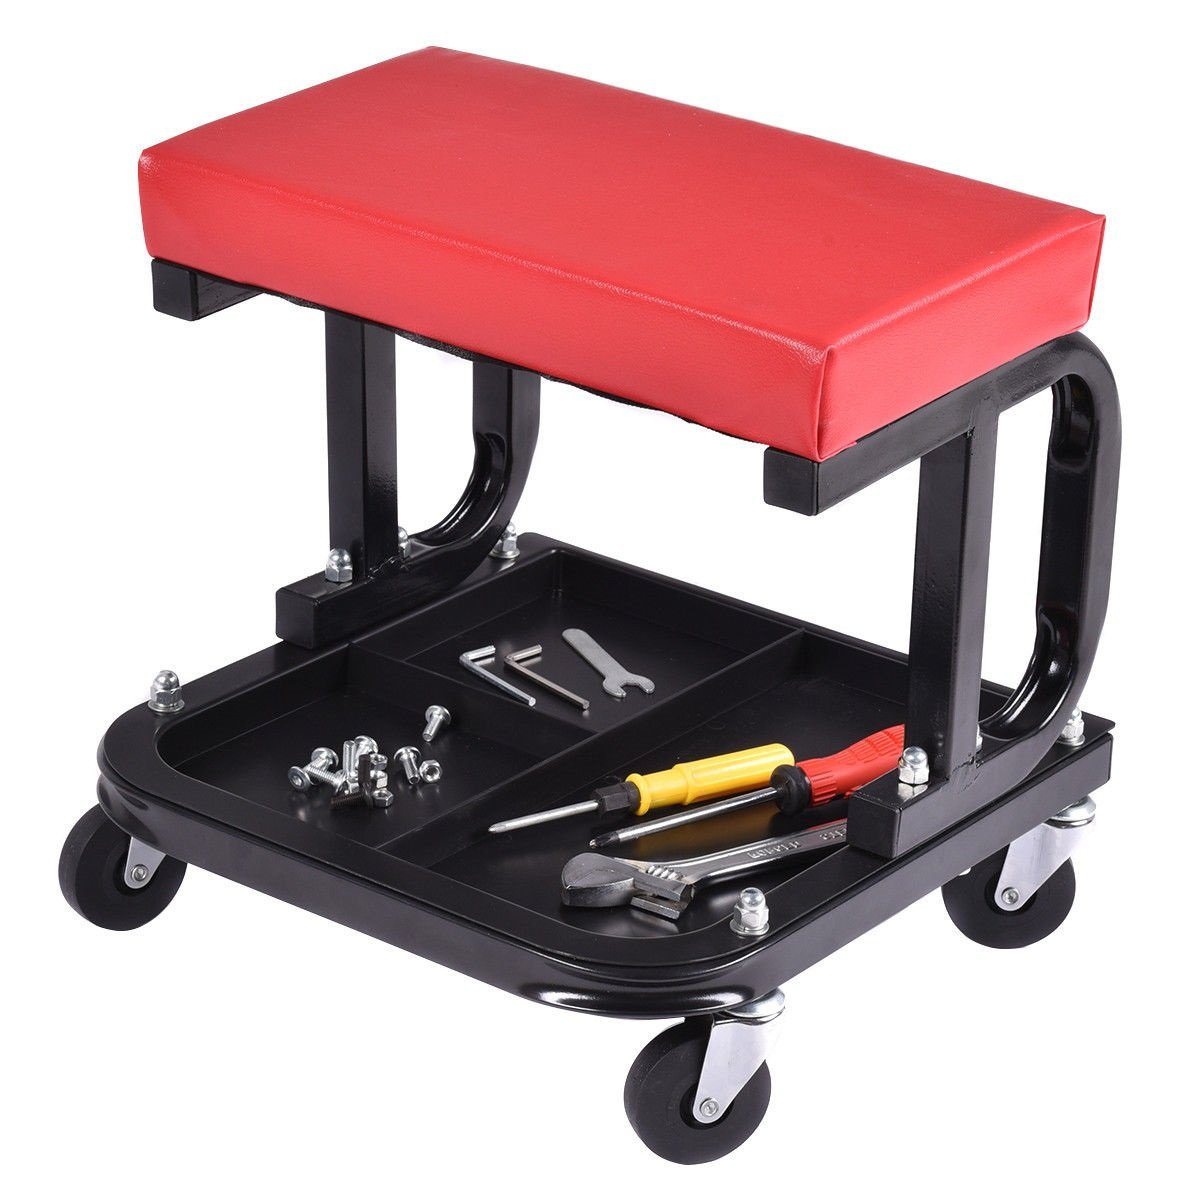 Rolling Creeper Seat Mechanic Stool Chair Repair Tools Tray Shop Auto Car Garage,NEW